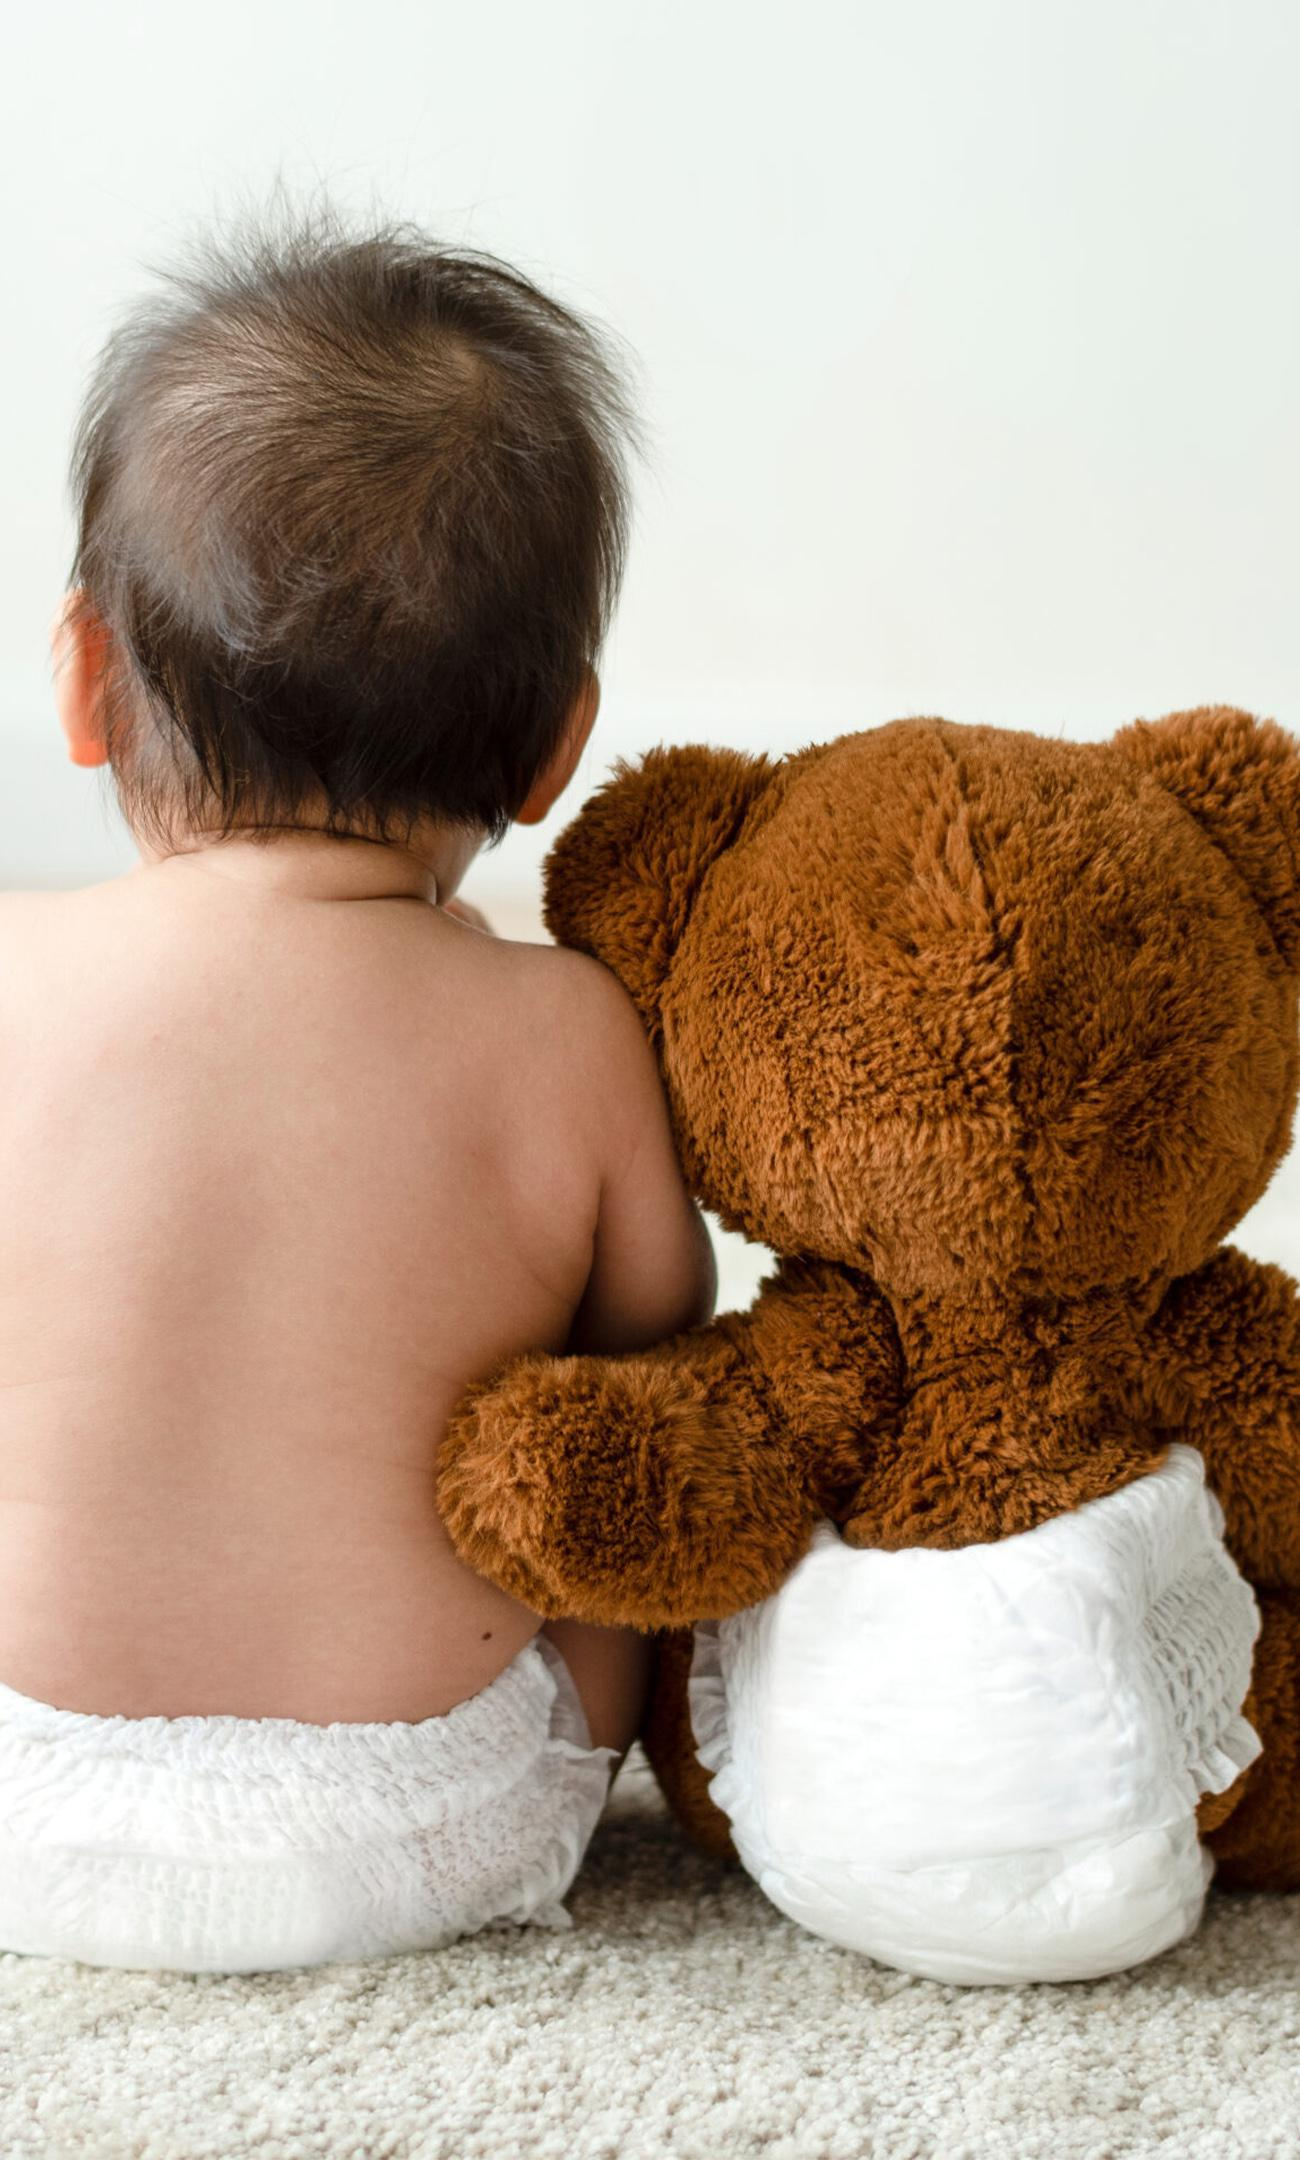 baby and bear sitting down